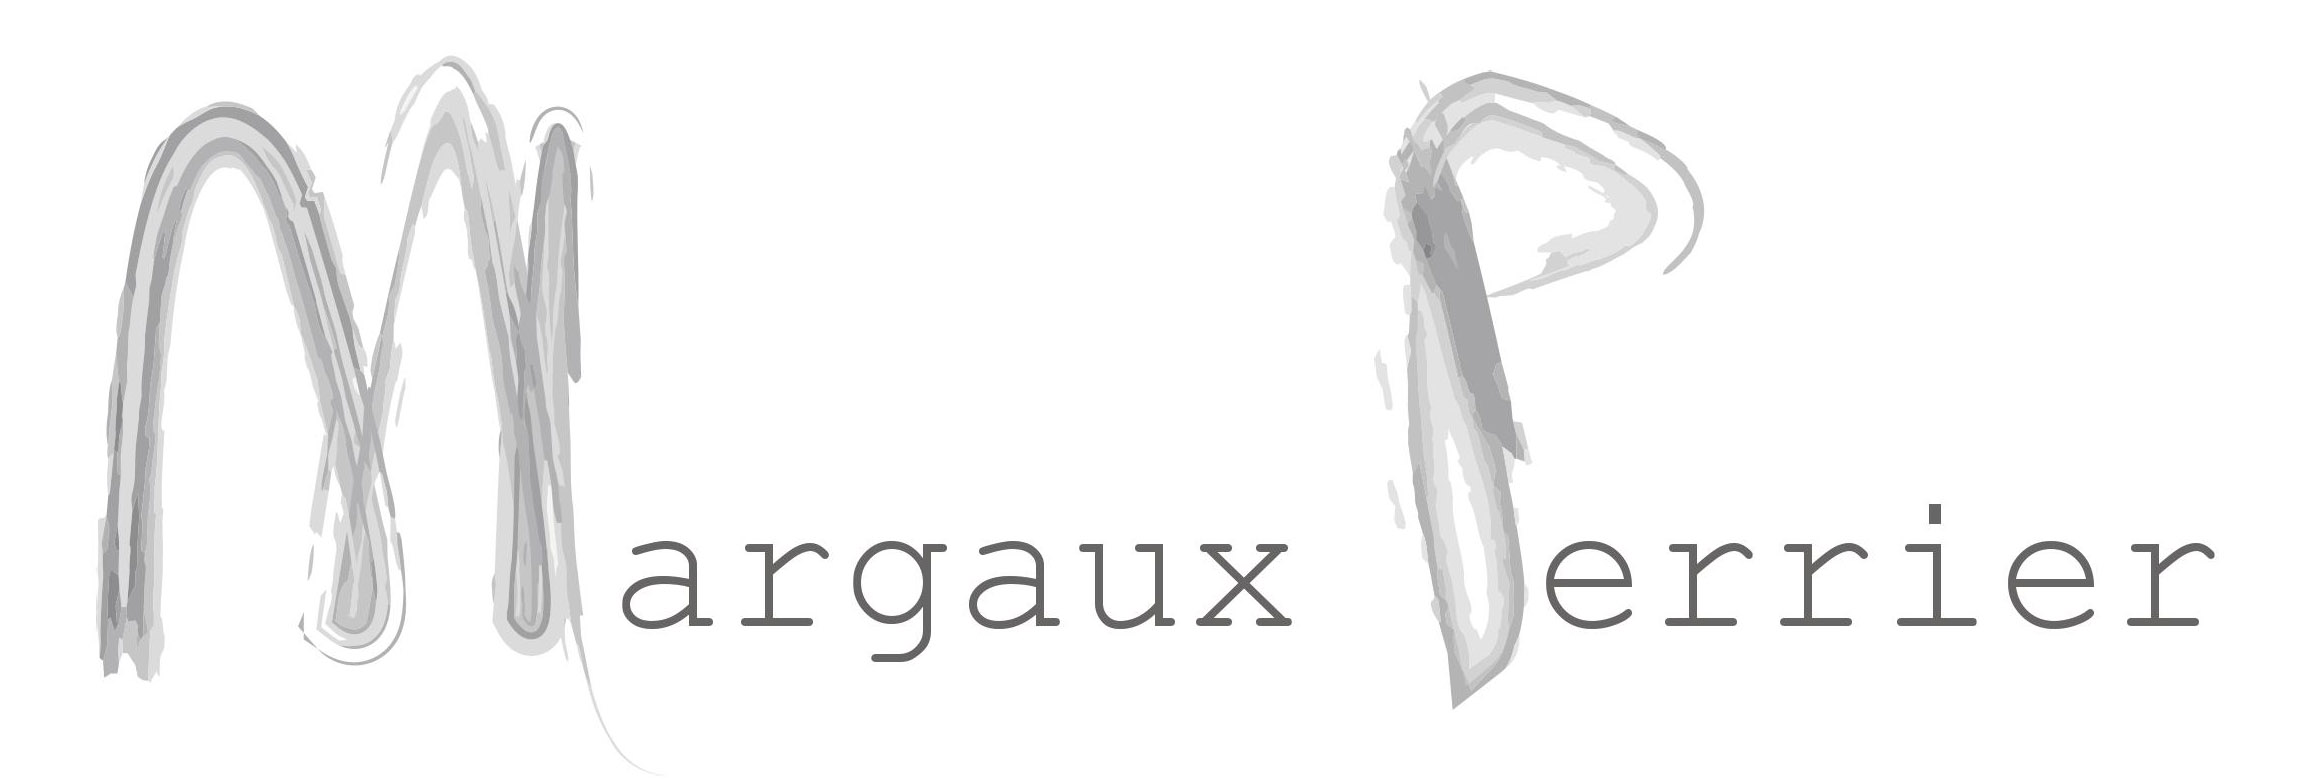 MARGAUX PERRIER Signature